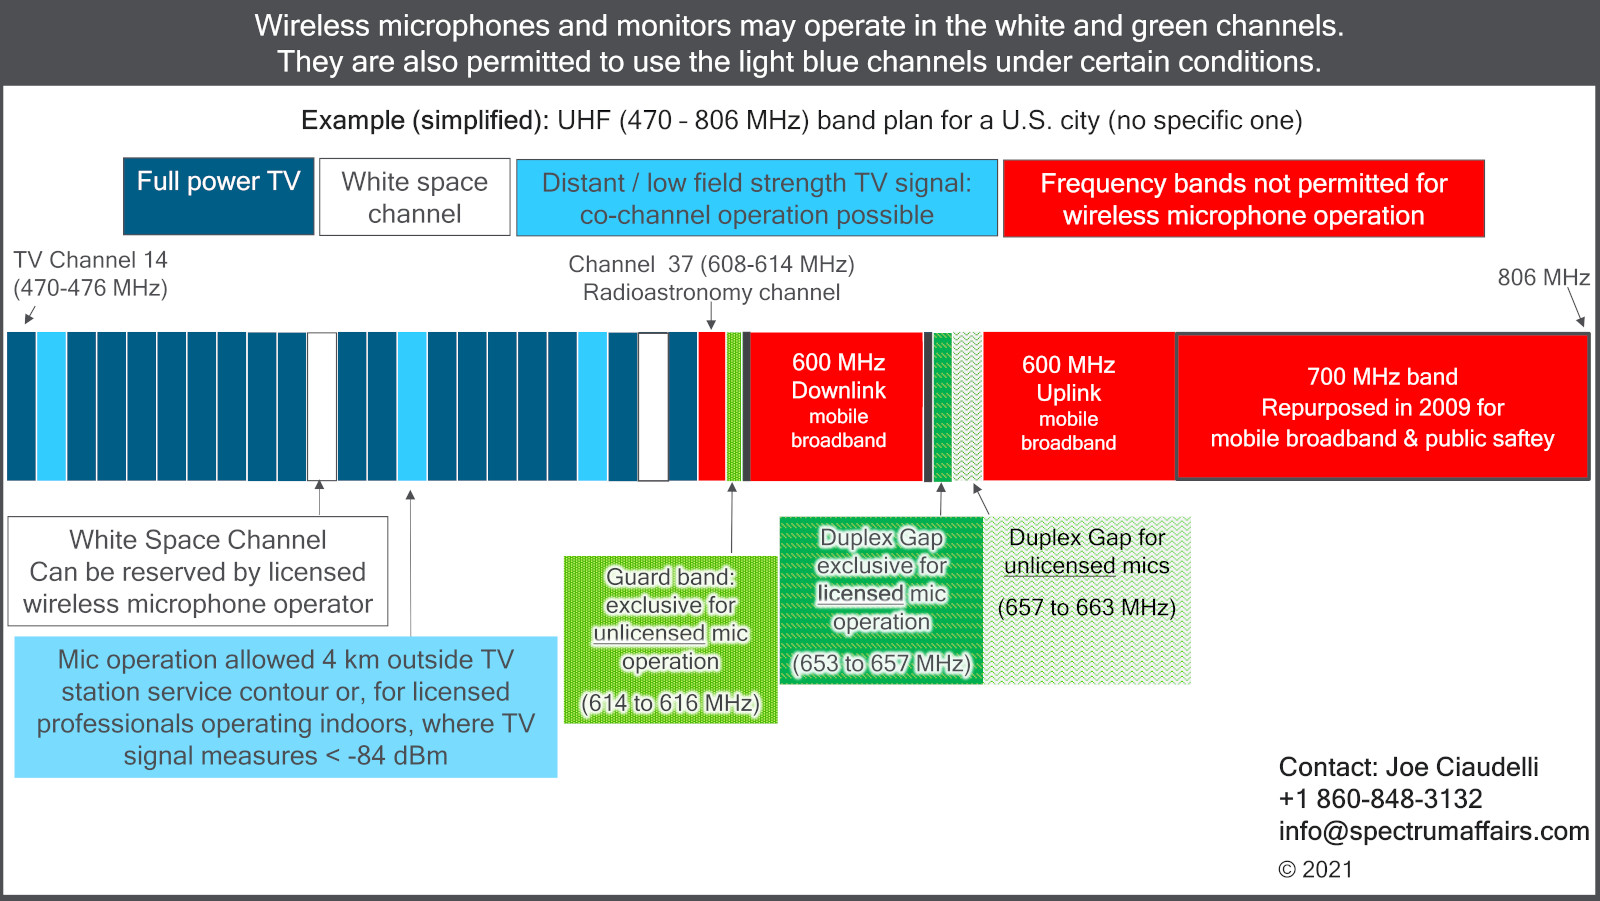 A diagram of where wireless microphones and monitors may (and may not) operate